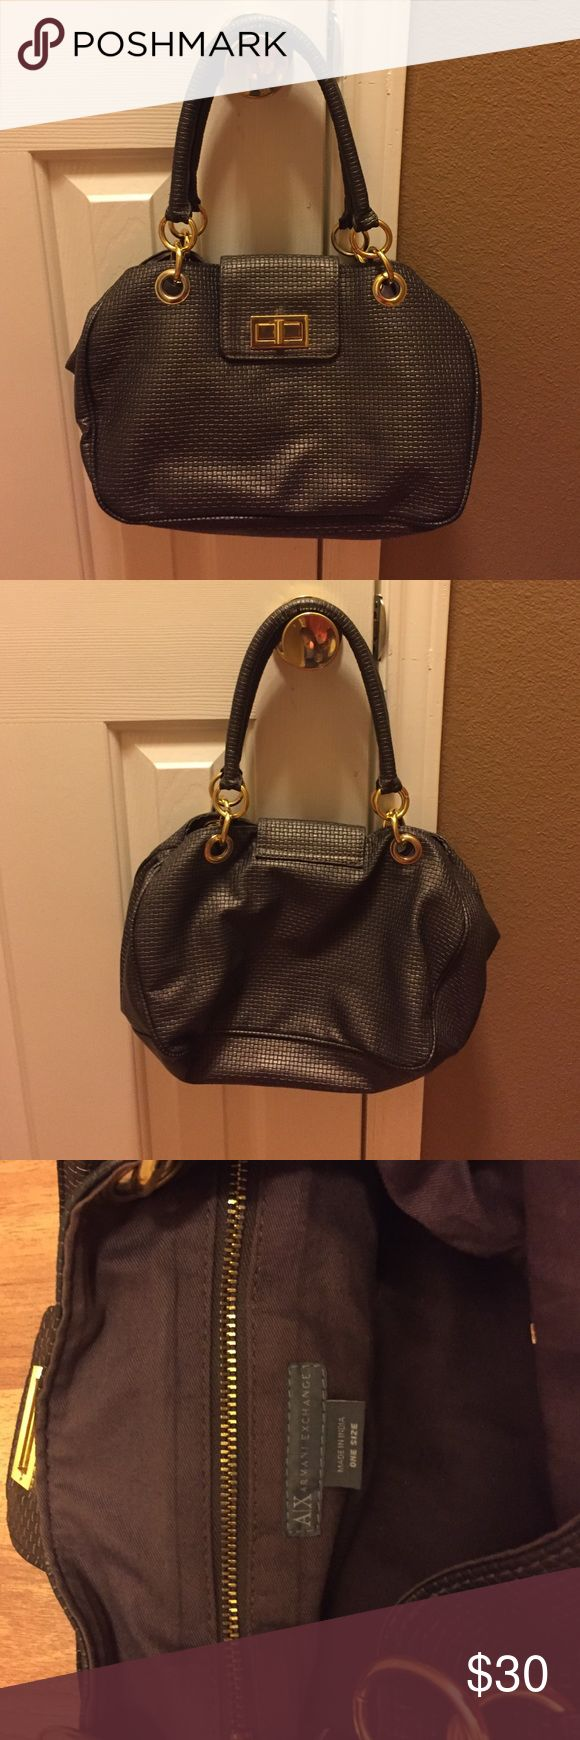 Armani Exchange Purse Pewter color with gold hardware. Bought on Posh but the purse is too small for me! Lol... I like BIG bags !!!! Armani Exchange Bags Satchels